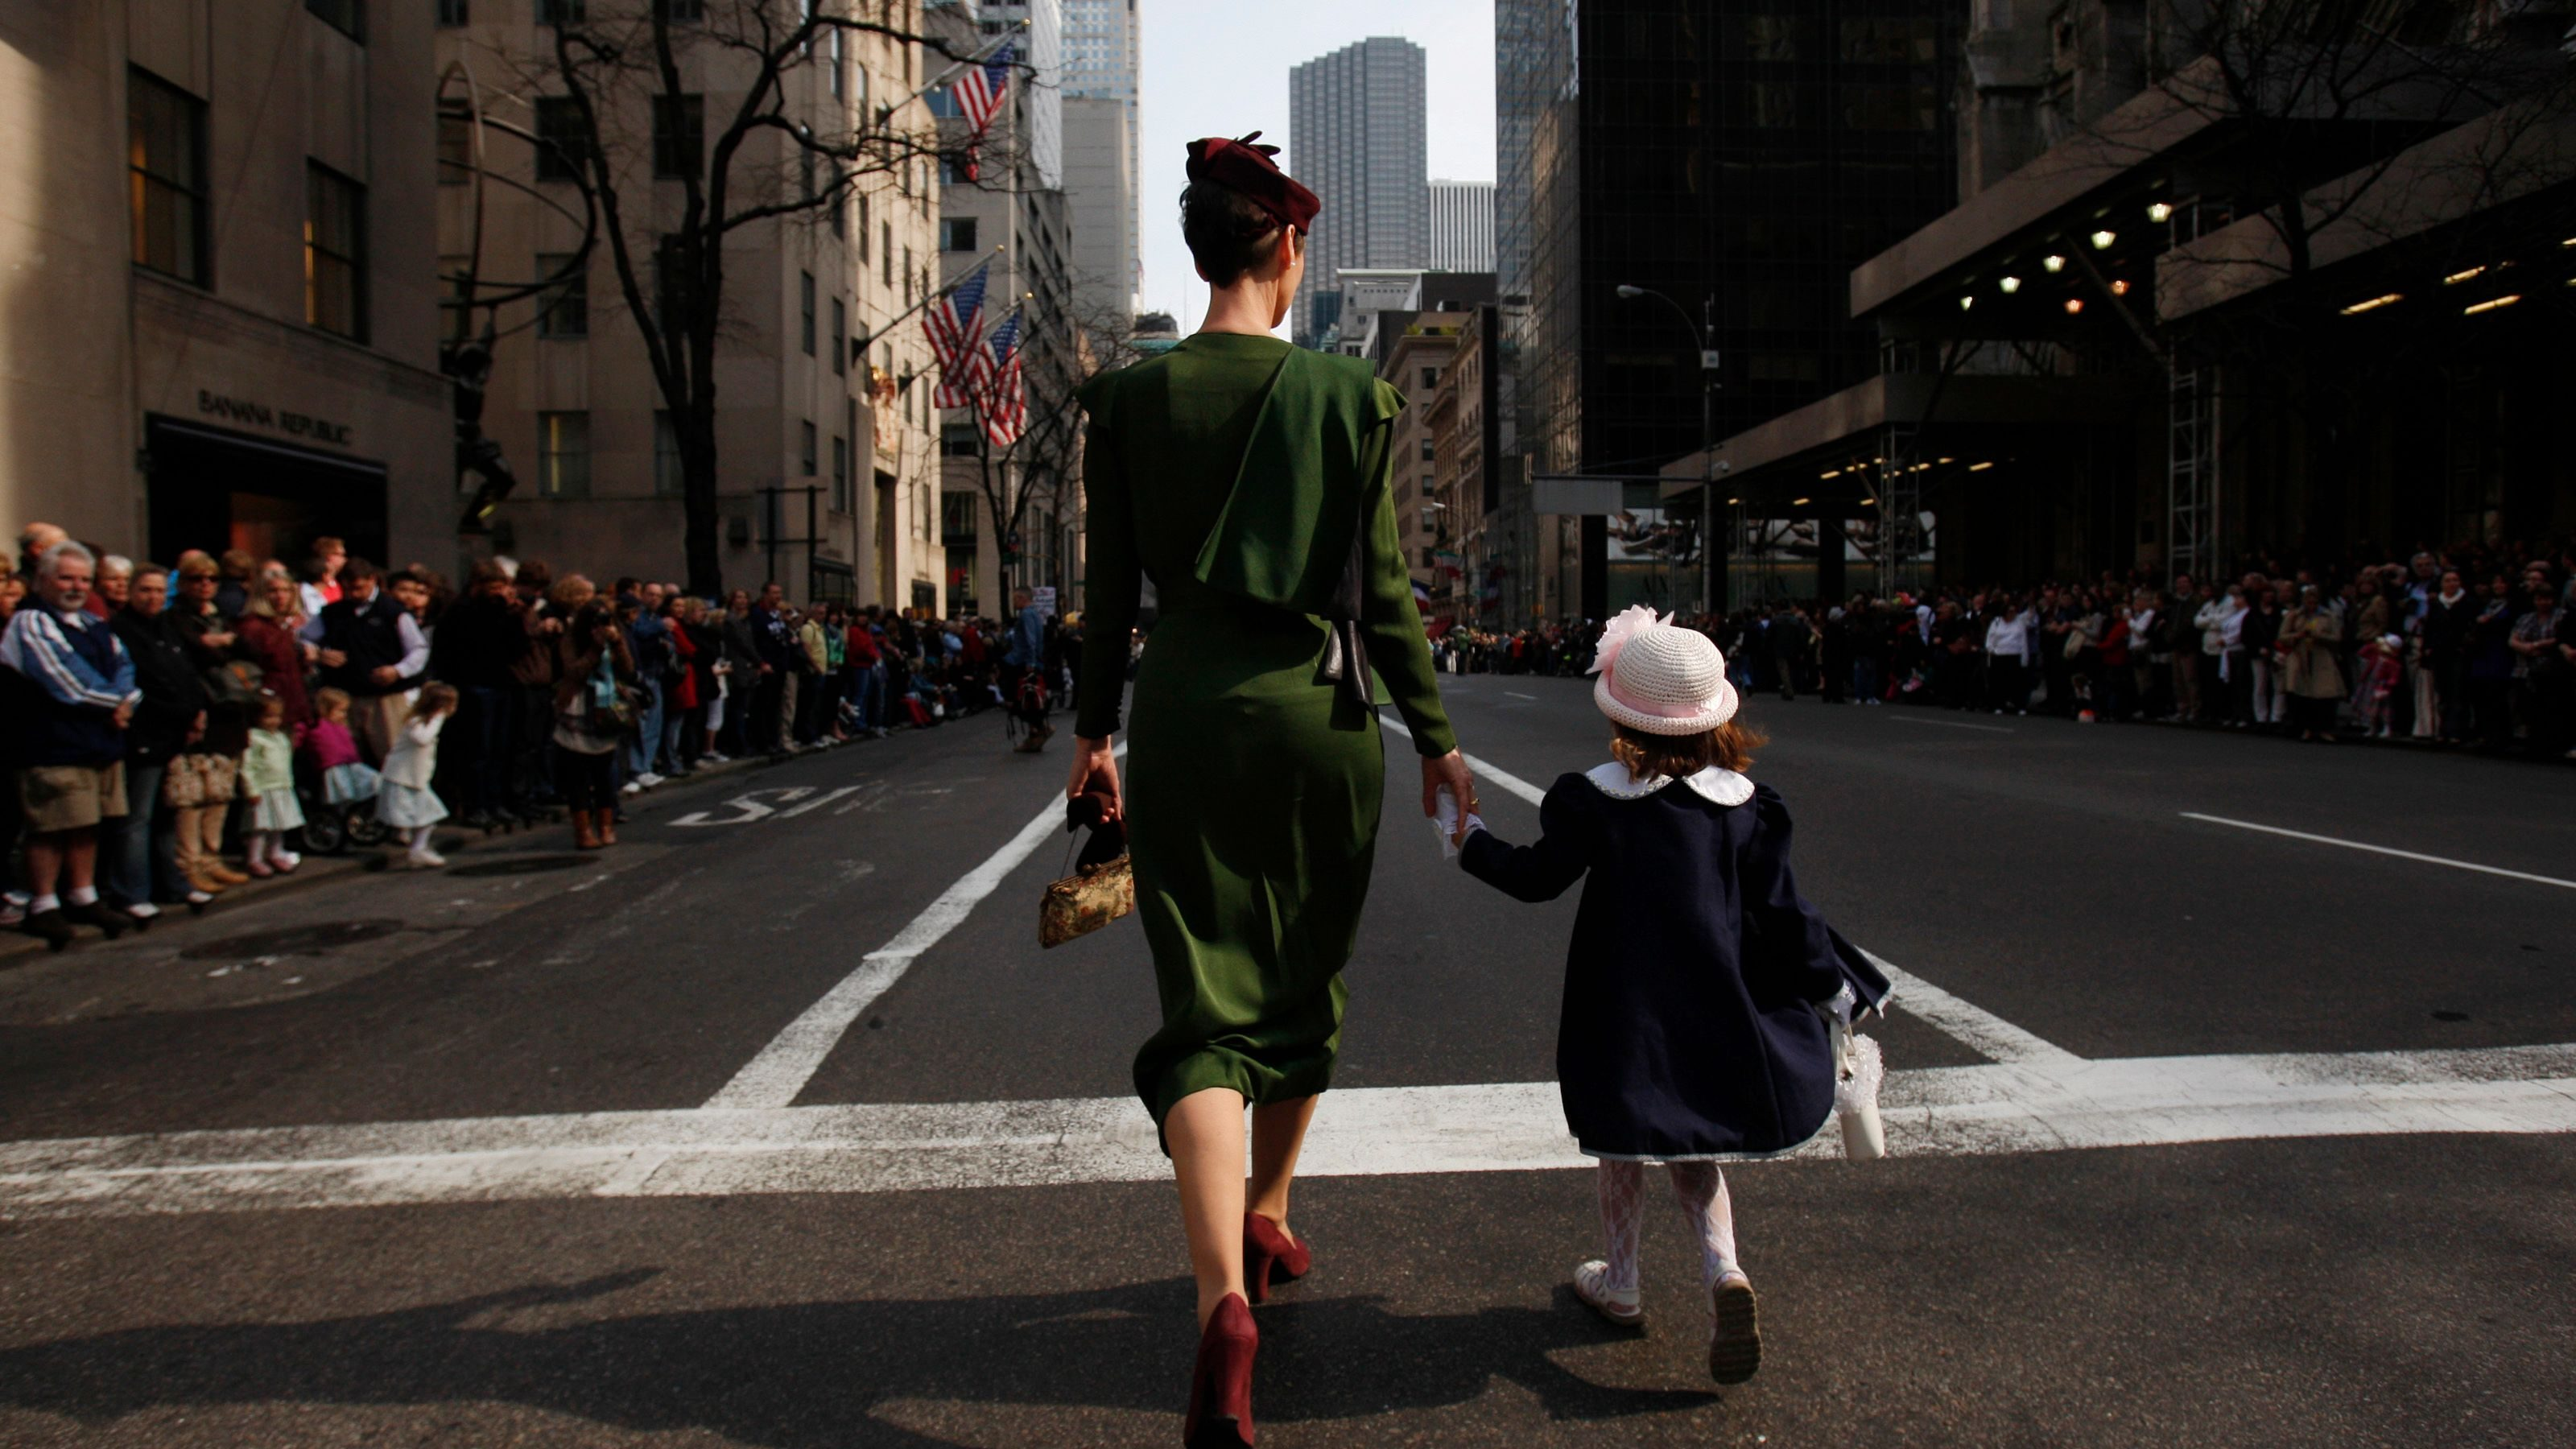 Maternity leave in the US: Mothers share their experience